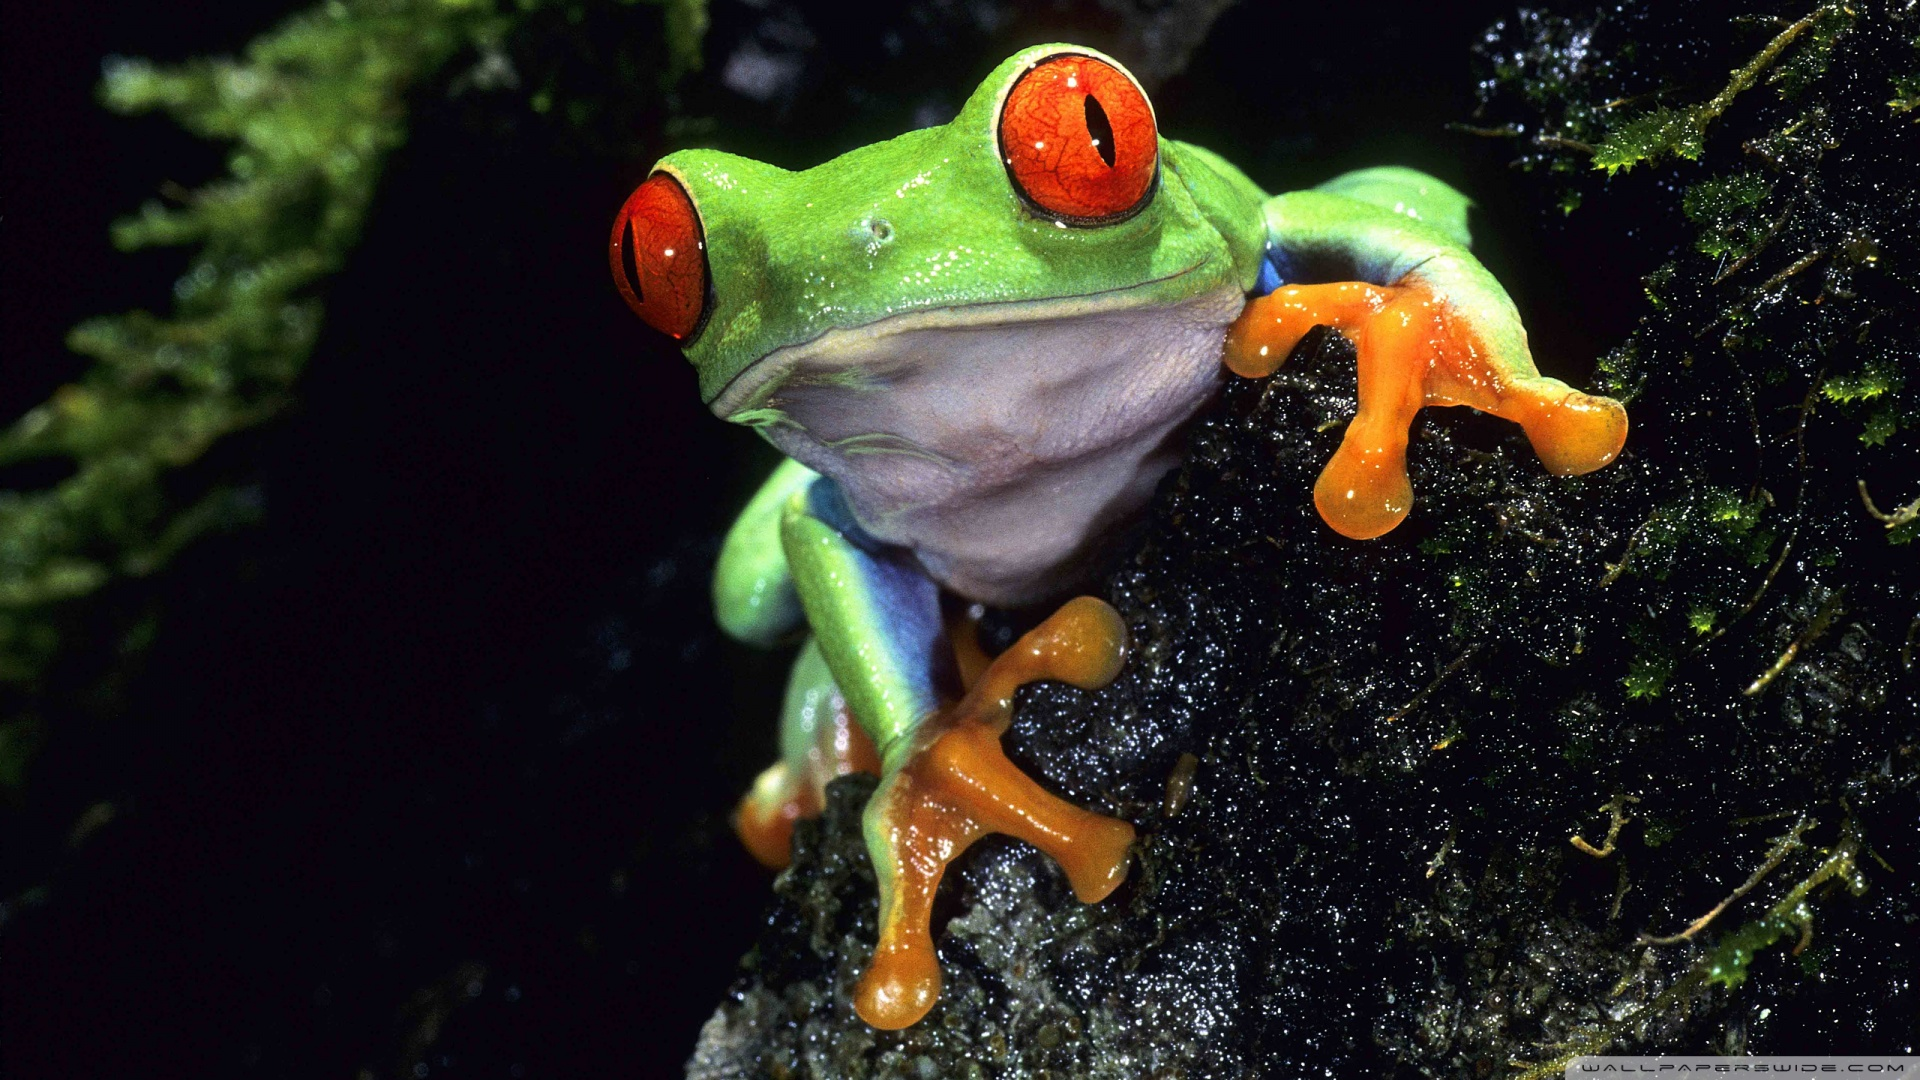 Red Eyed Tree Frog Backgrounds on Wallpapers Vista